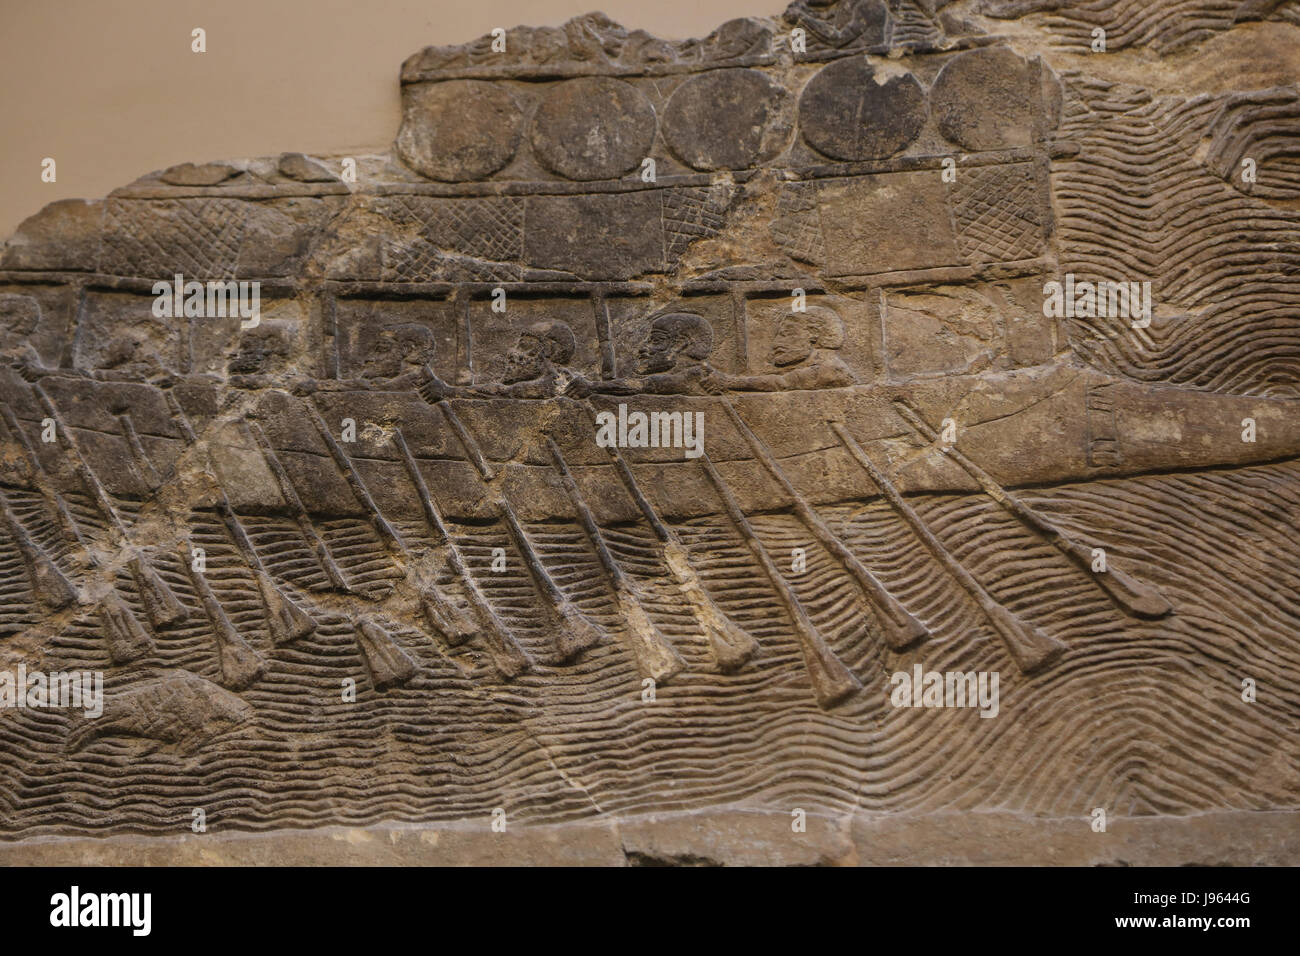 Warship. Built and manned by phoenicians employed by Sennacherib. Assyrian, 700-692 BC. Nineveh, South-West Palace. - Stock Image